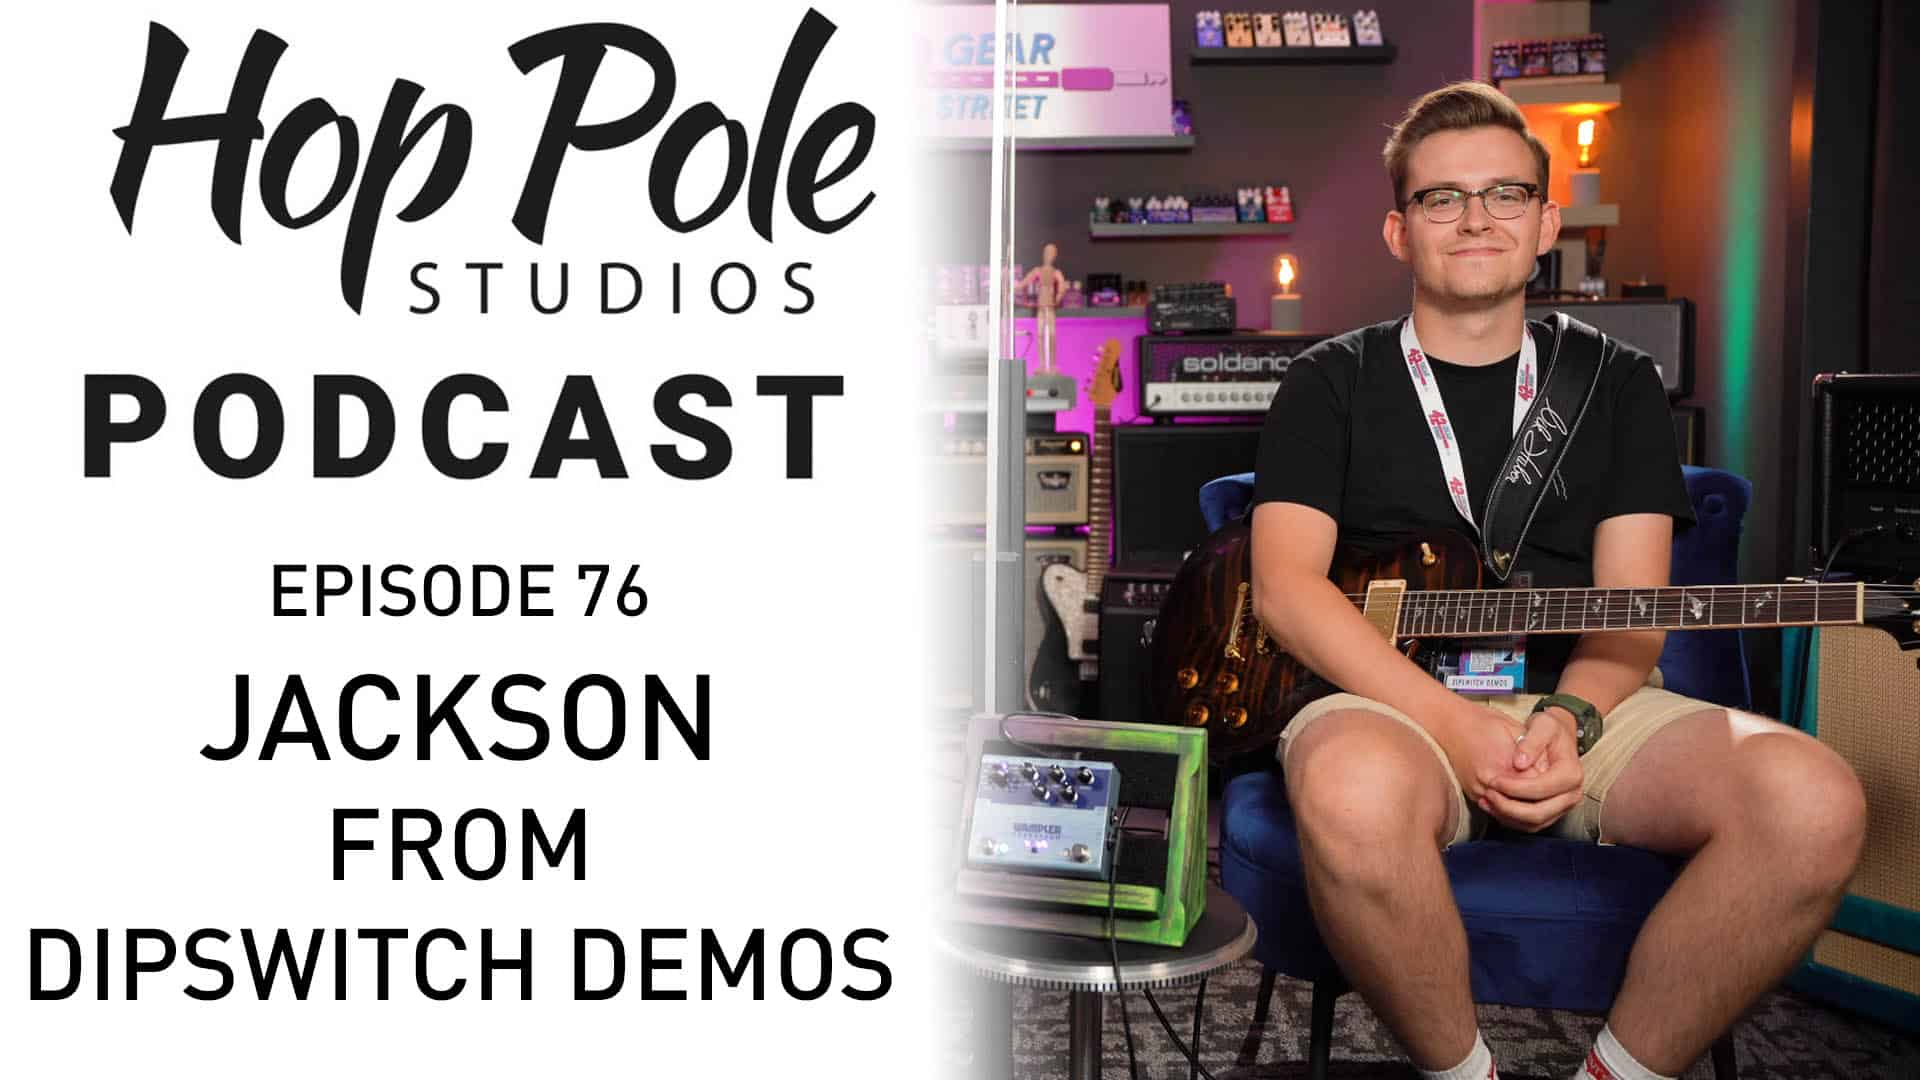 Amplitube 5 announced! Feat. Dipswitch Demos  | The Hop Pole Podcast #076